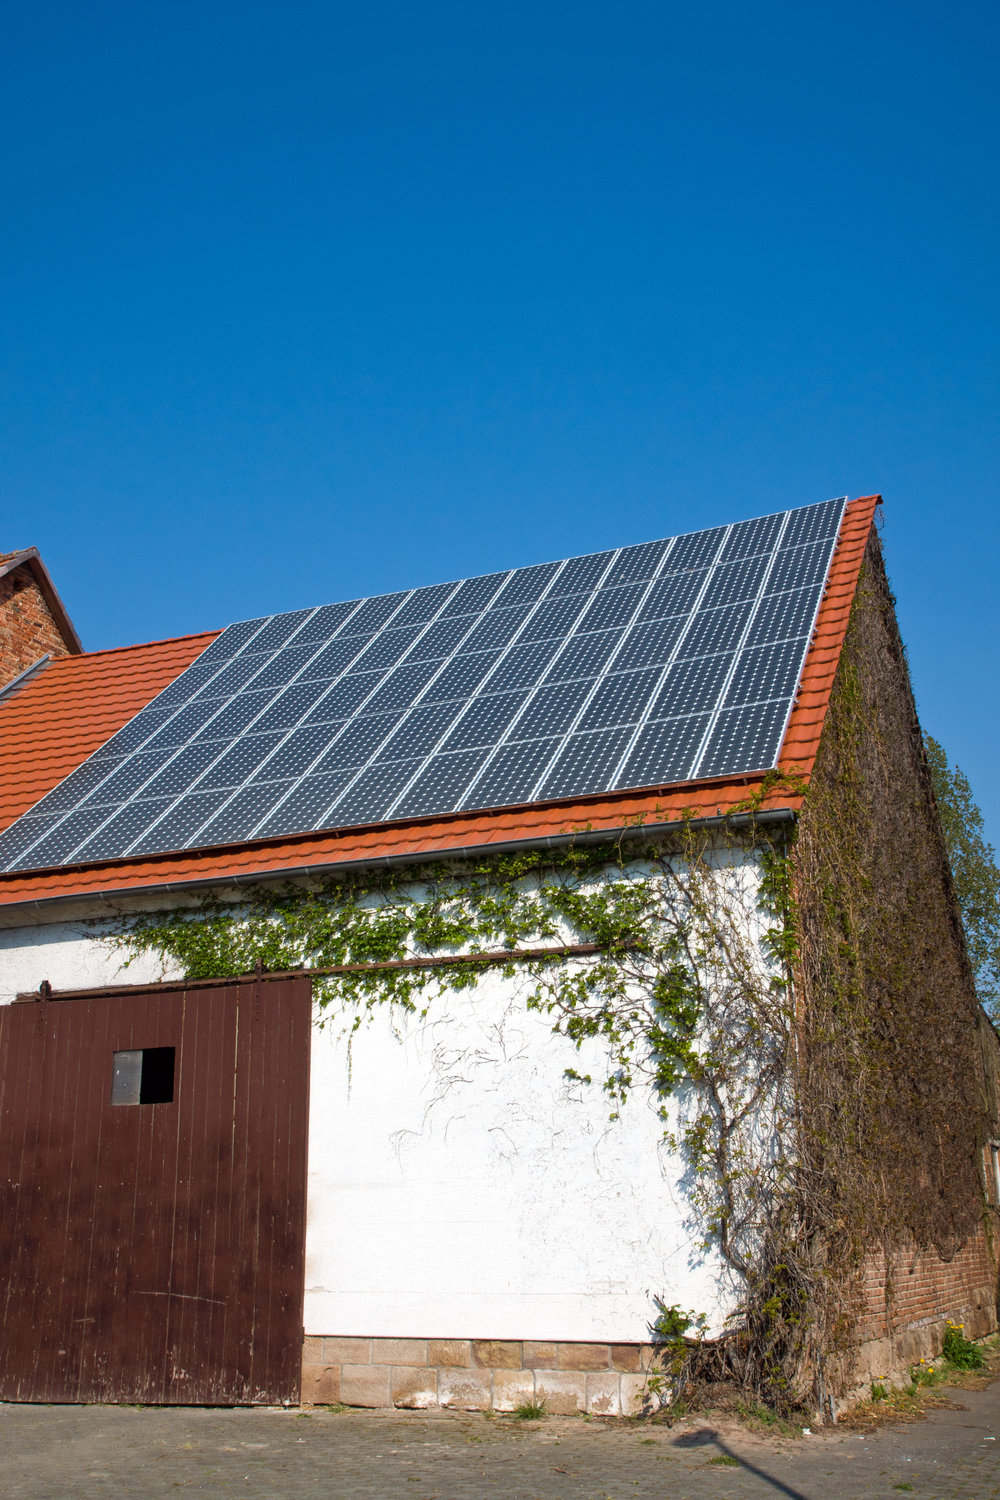 old-barn-with-solar-cells-P9AHPRS.jpg